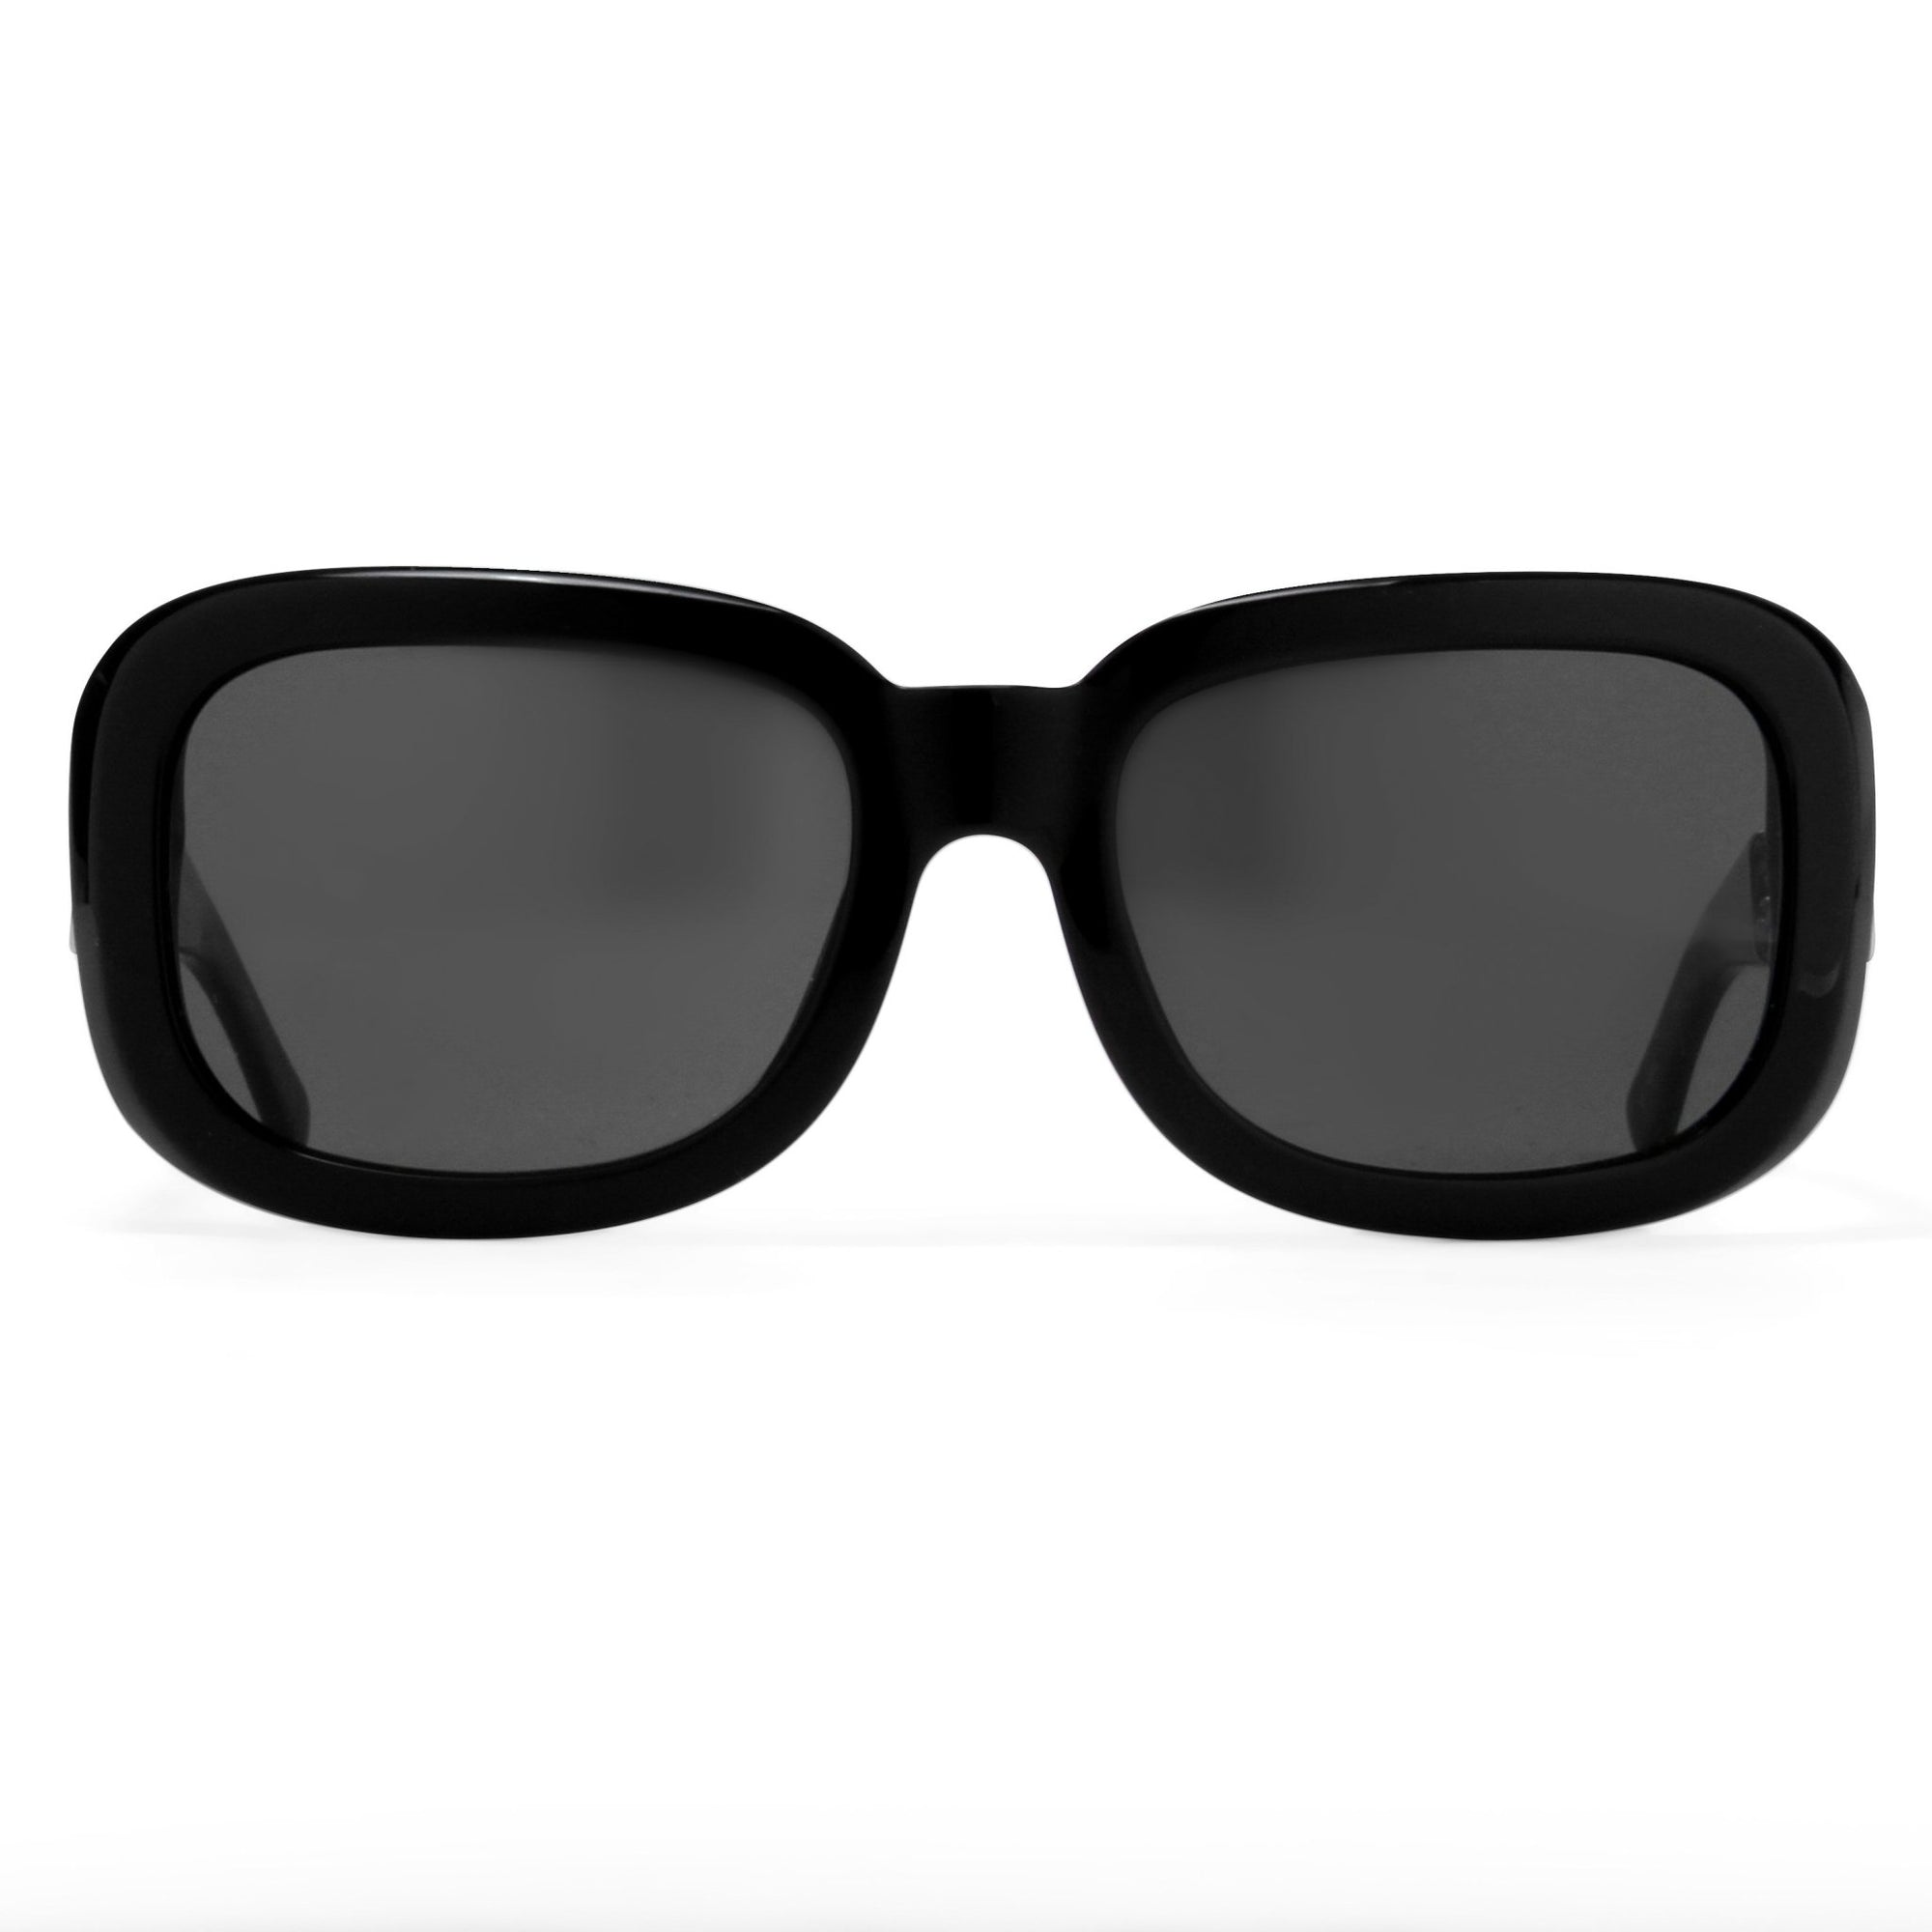 Prabal Gurung Sunglasses Women's Rectangle Black Acetate CAT3 Grey Lenses PG13C1SUN - Watches & Crystals